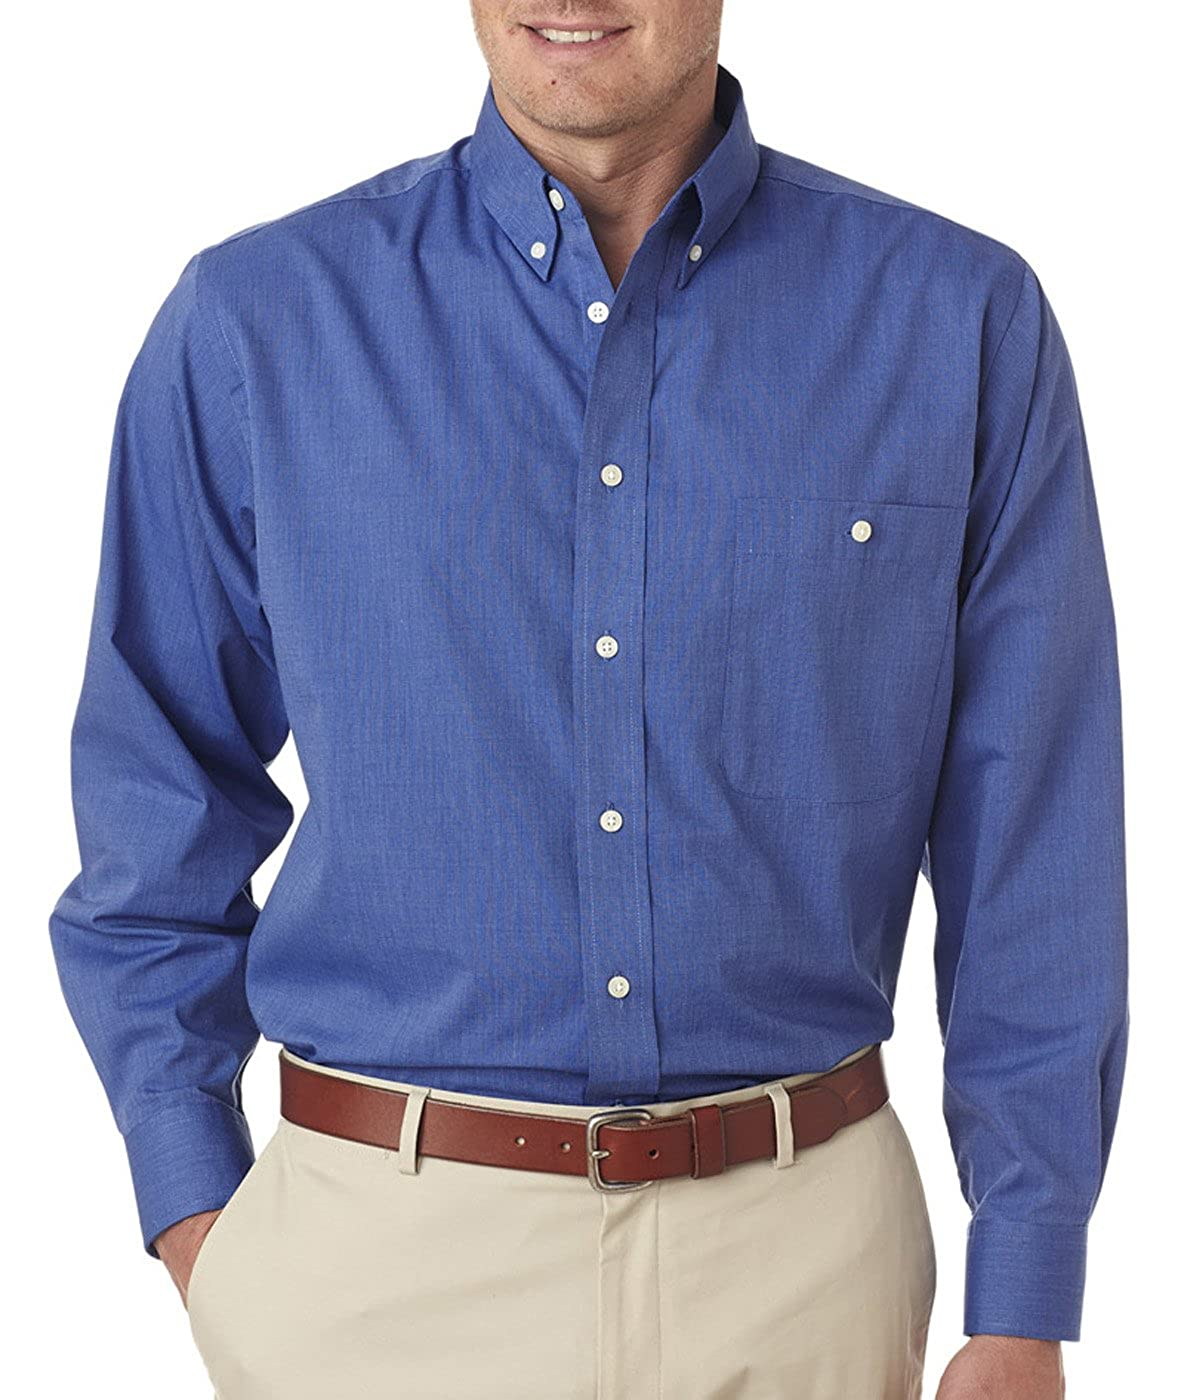 UltraClub Mens Wrinkle-Free End-On-End Solid Dress Shirt